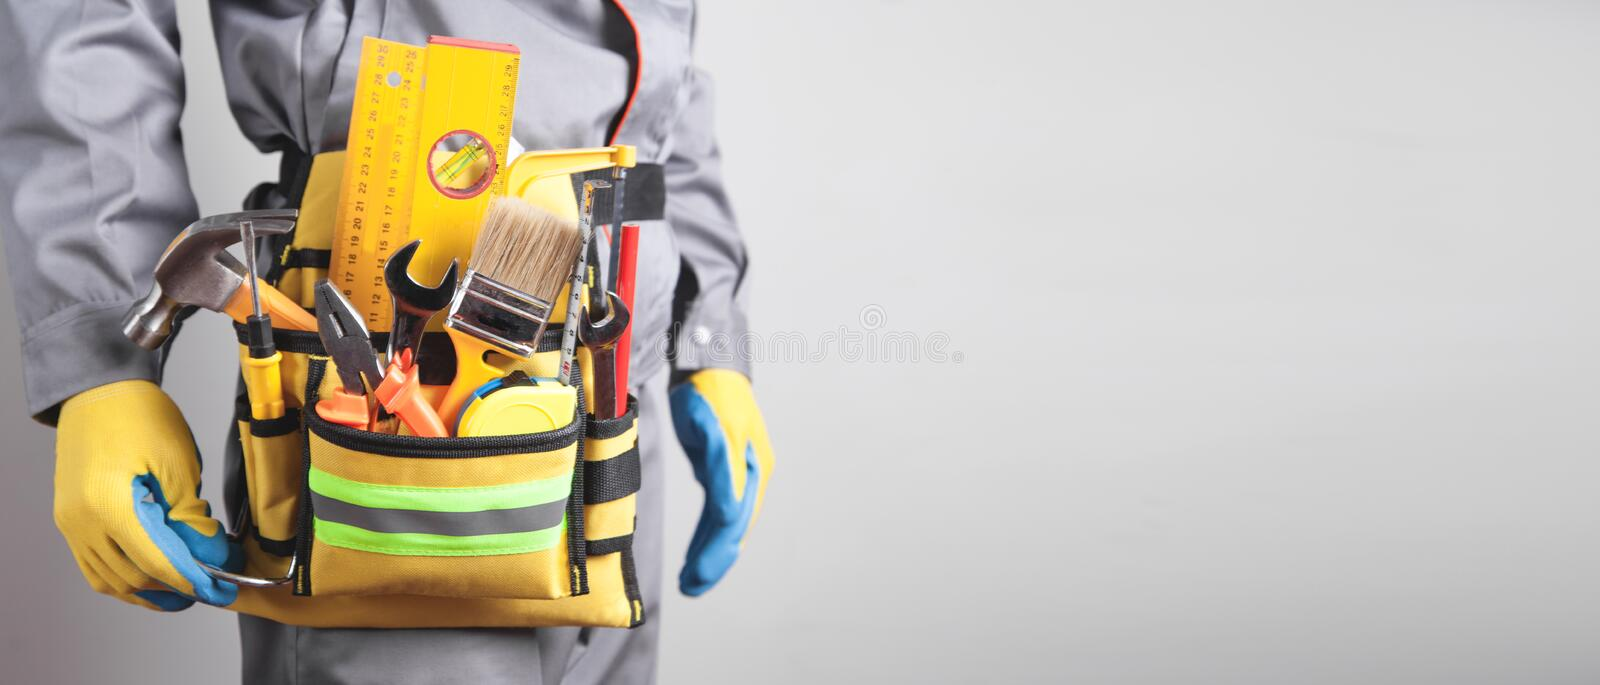 Worker with a tool belt. Construction tools royalty free stock photos